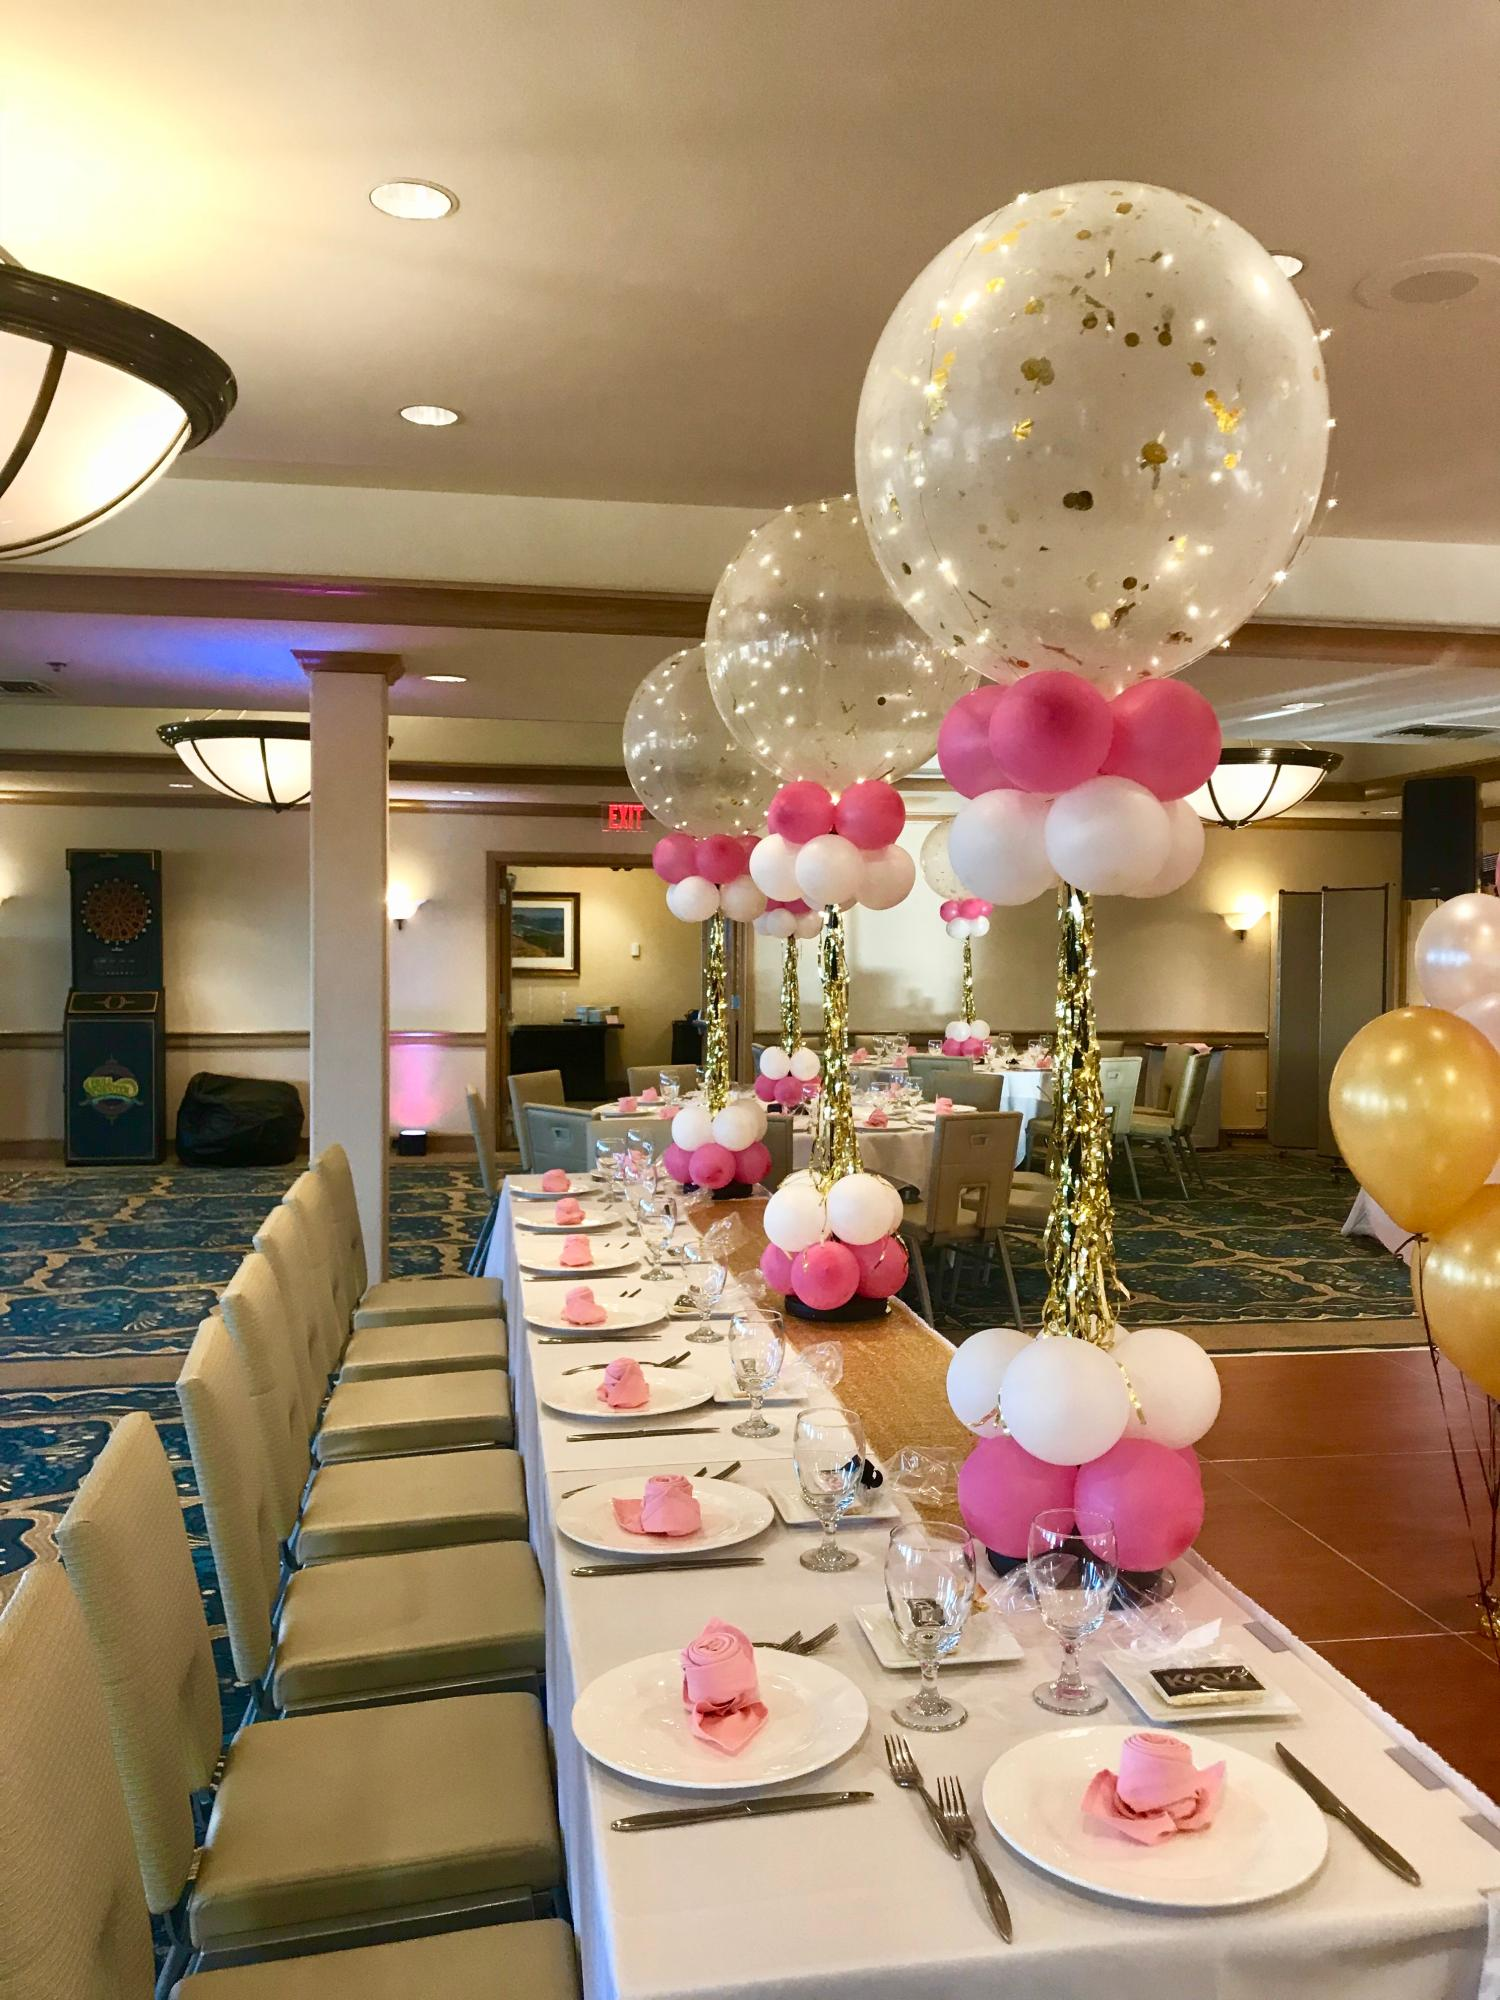 balloon_centerpieces_by_Violet_Balloonz.JPG